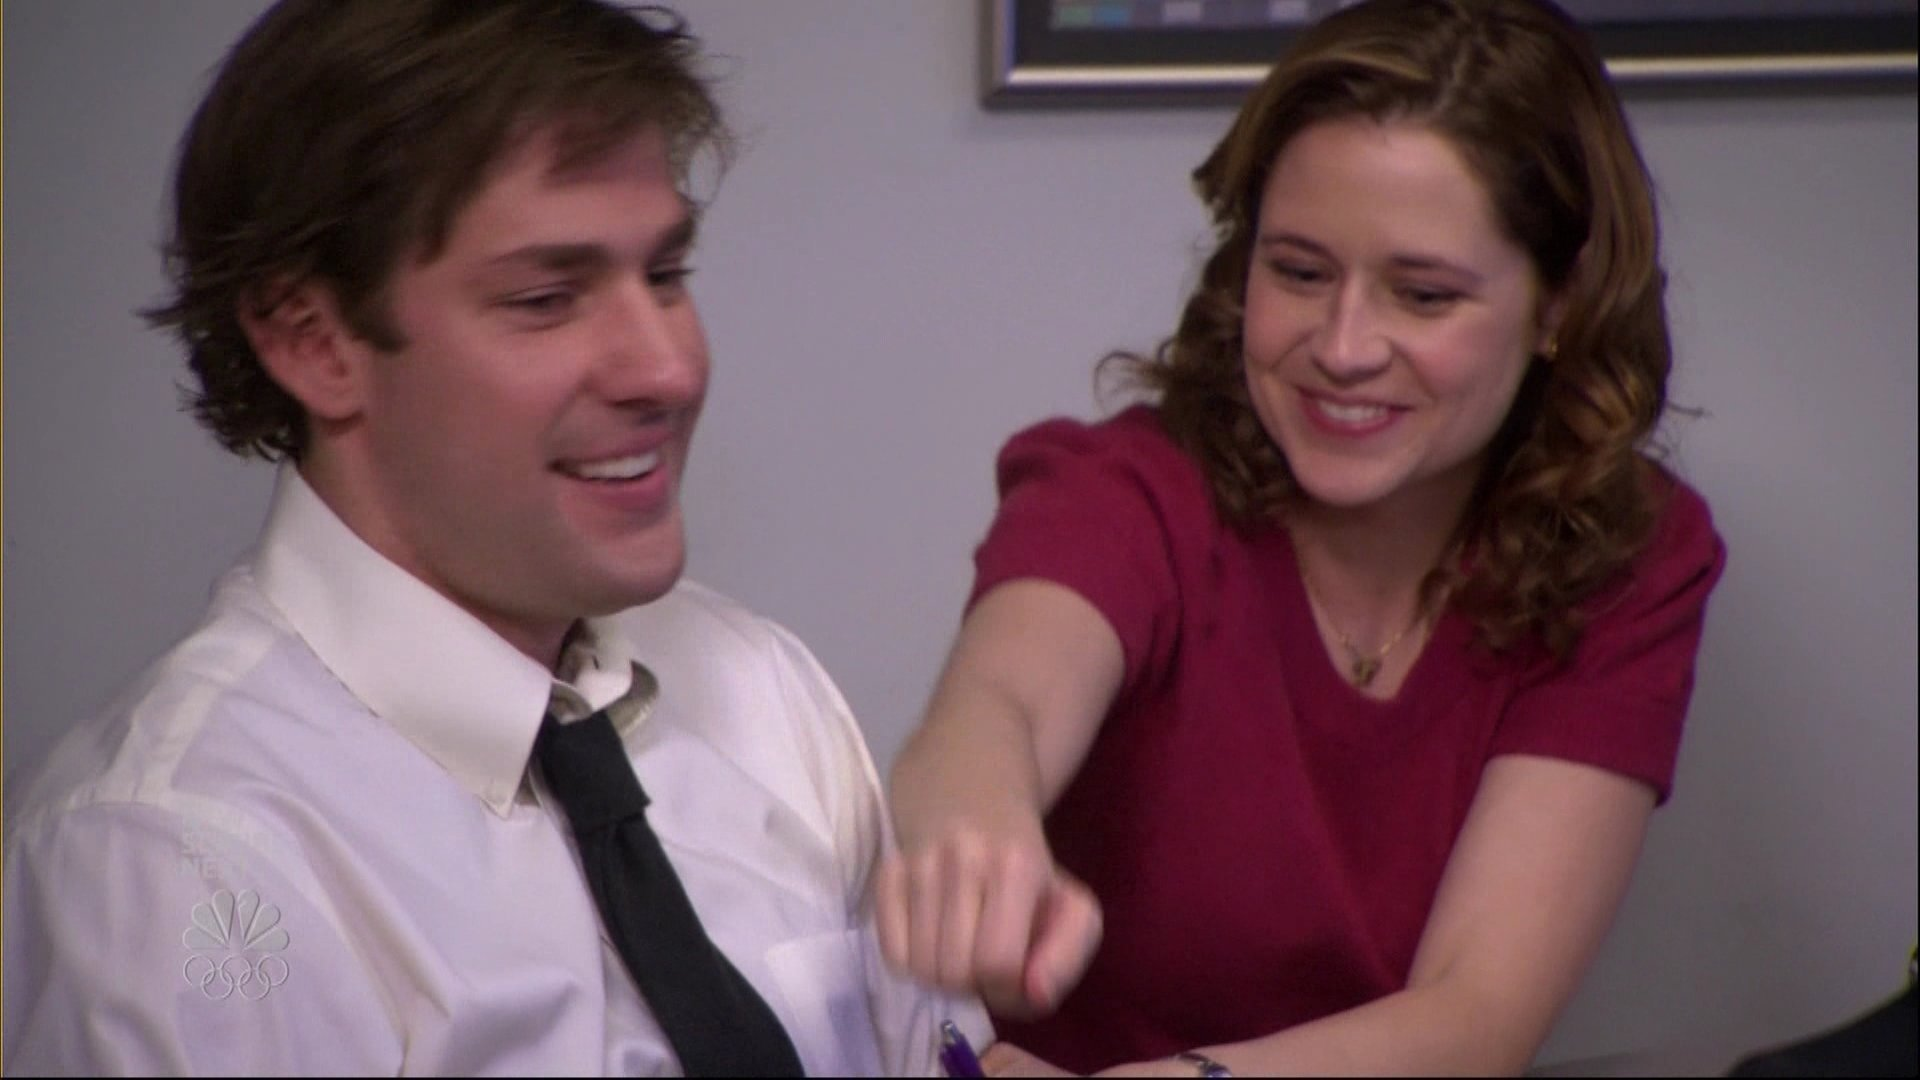 tv couples images jim pam the office hd wallpaper and background